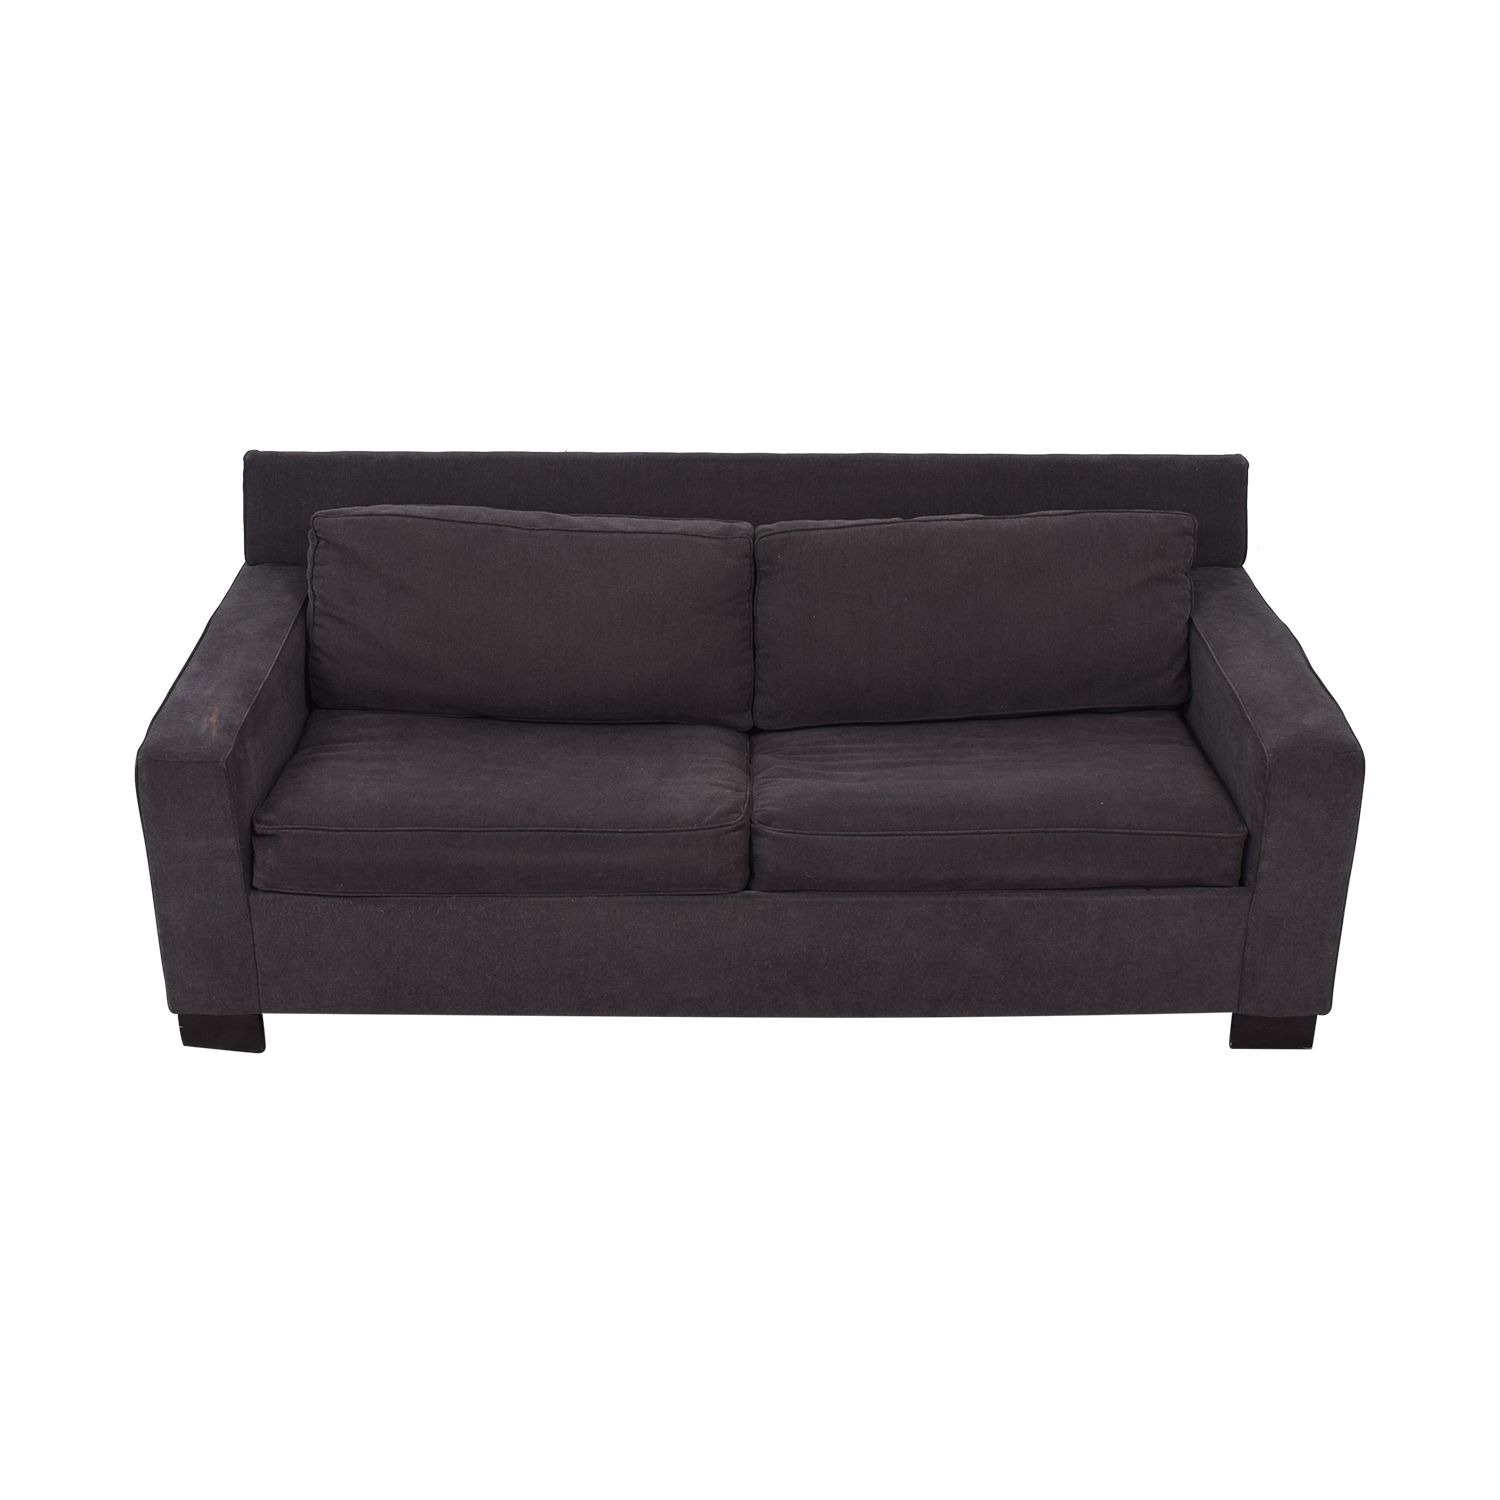 West Elm West Elm Henry Sleeper Sofa on sale